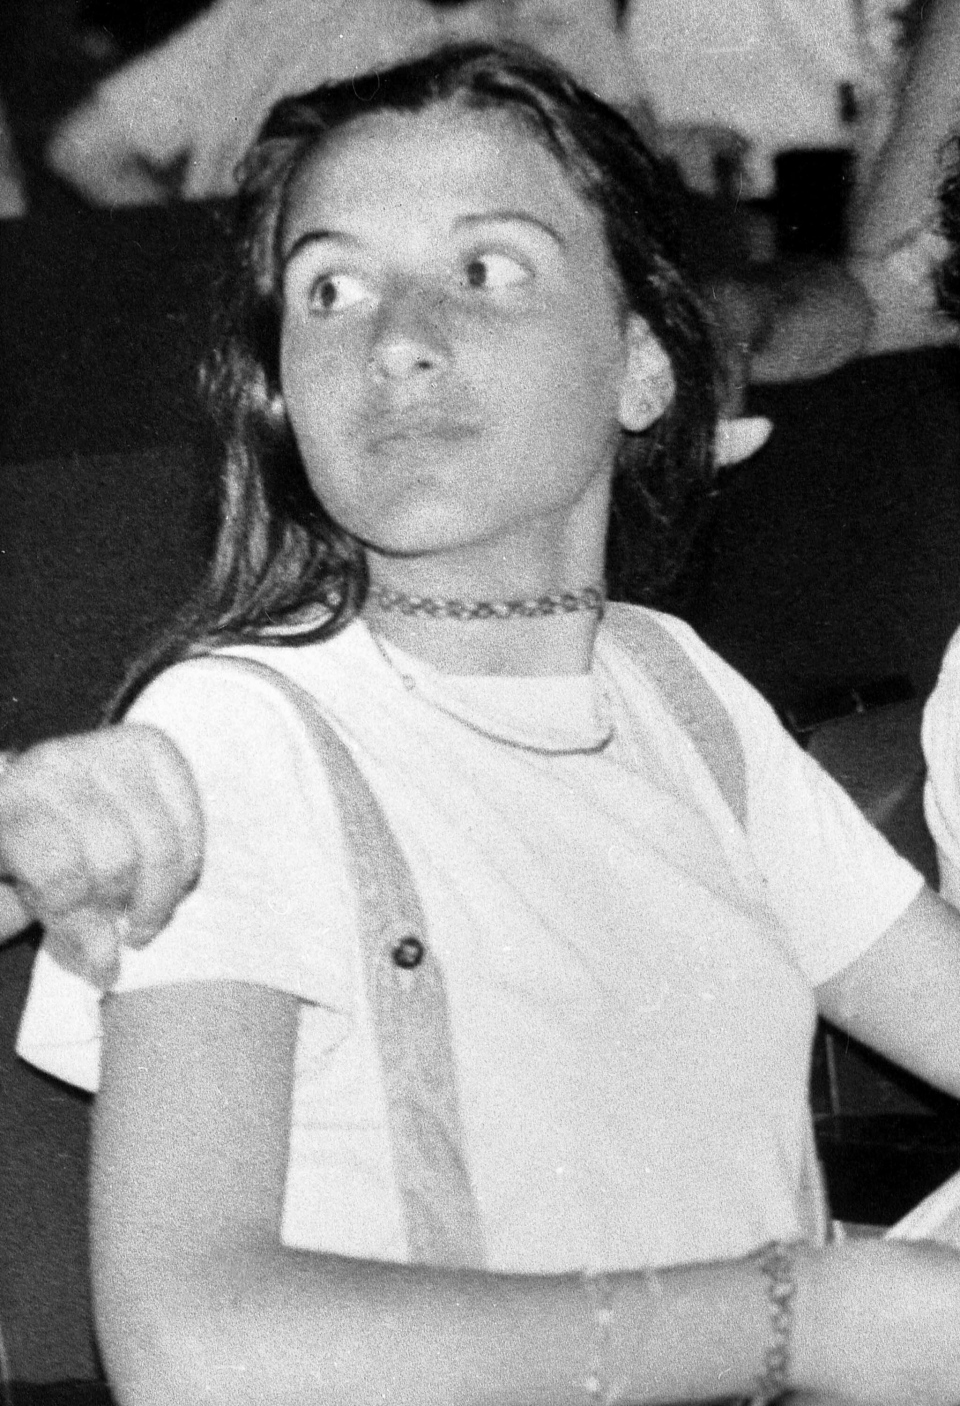 Undated picture of Italian teenager Emanuela Orlandi, the daughter of a Vatican employee, believed to have been kidnapped after a music lesson in Rome on June 22, 1983 when she was 15-years-old. (AP Photo)